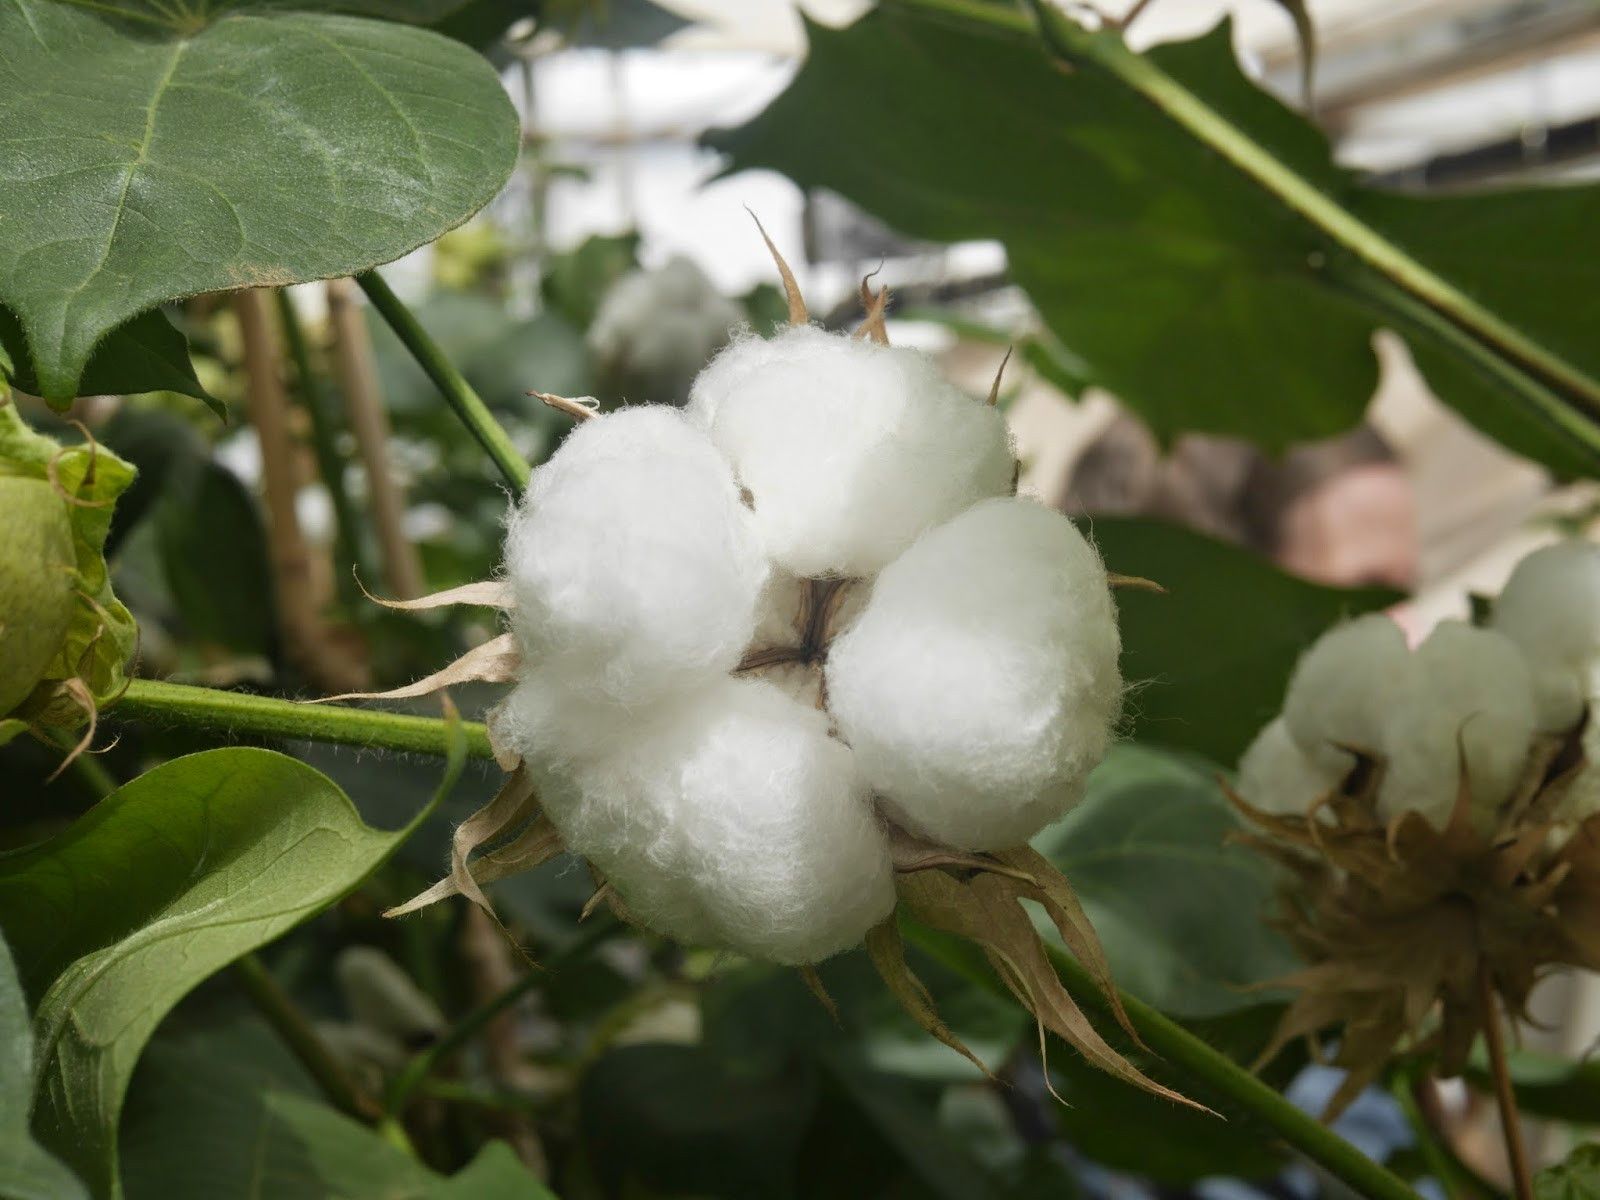 transitional cotton farming